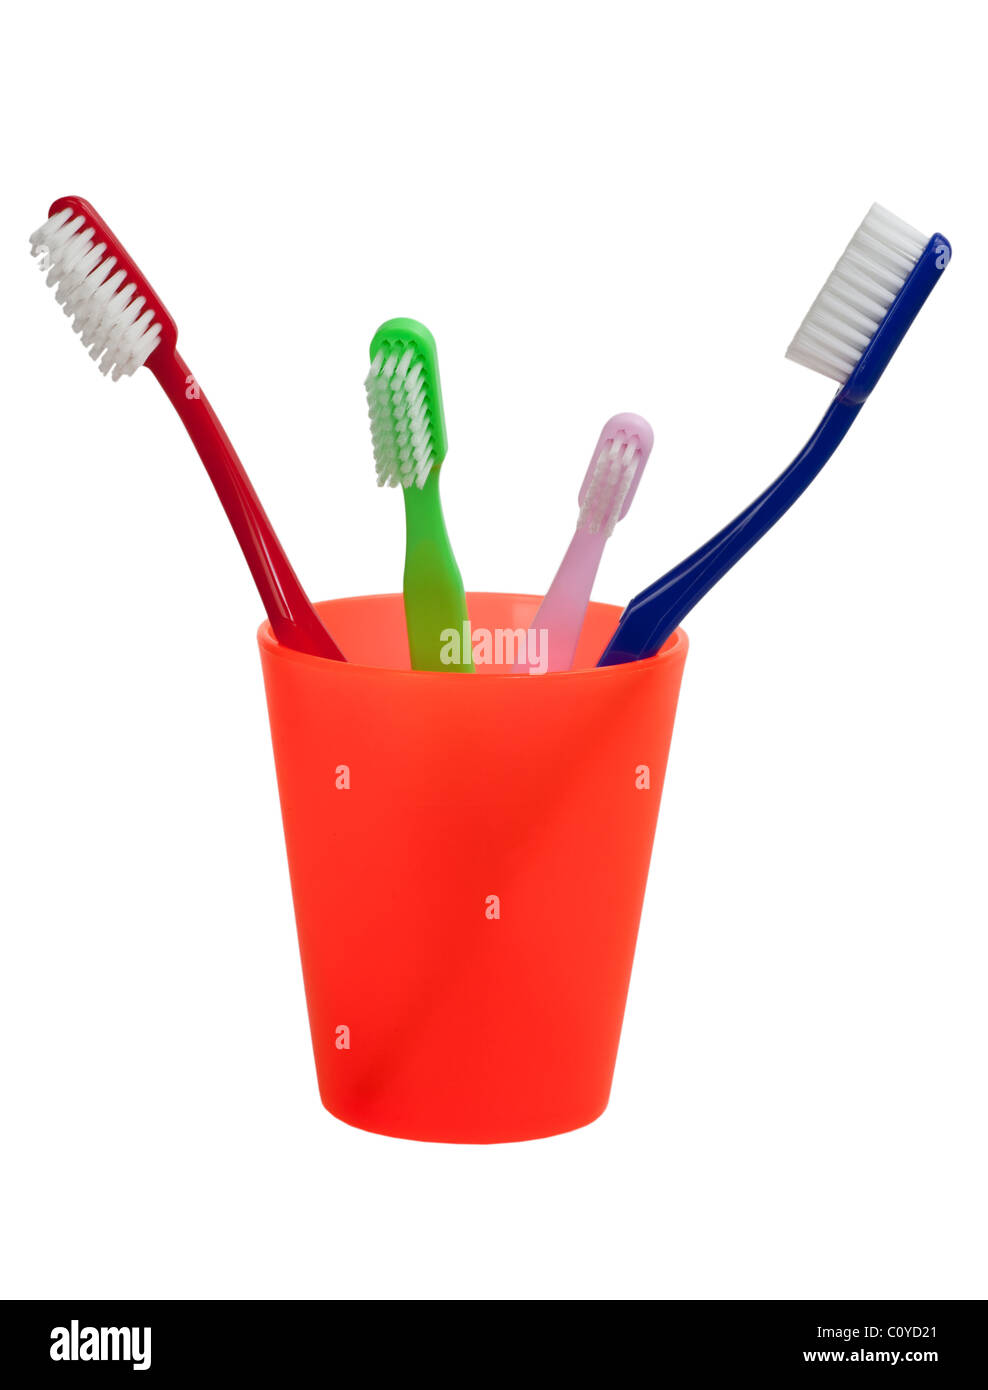 Family of different size toothbrush in a cup isolated on white background - Stock Image